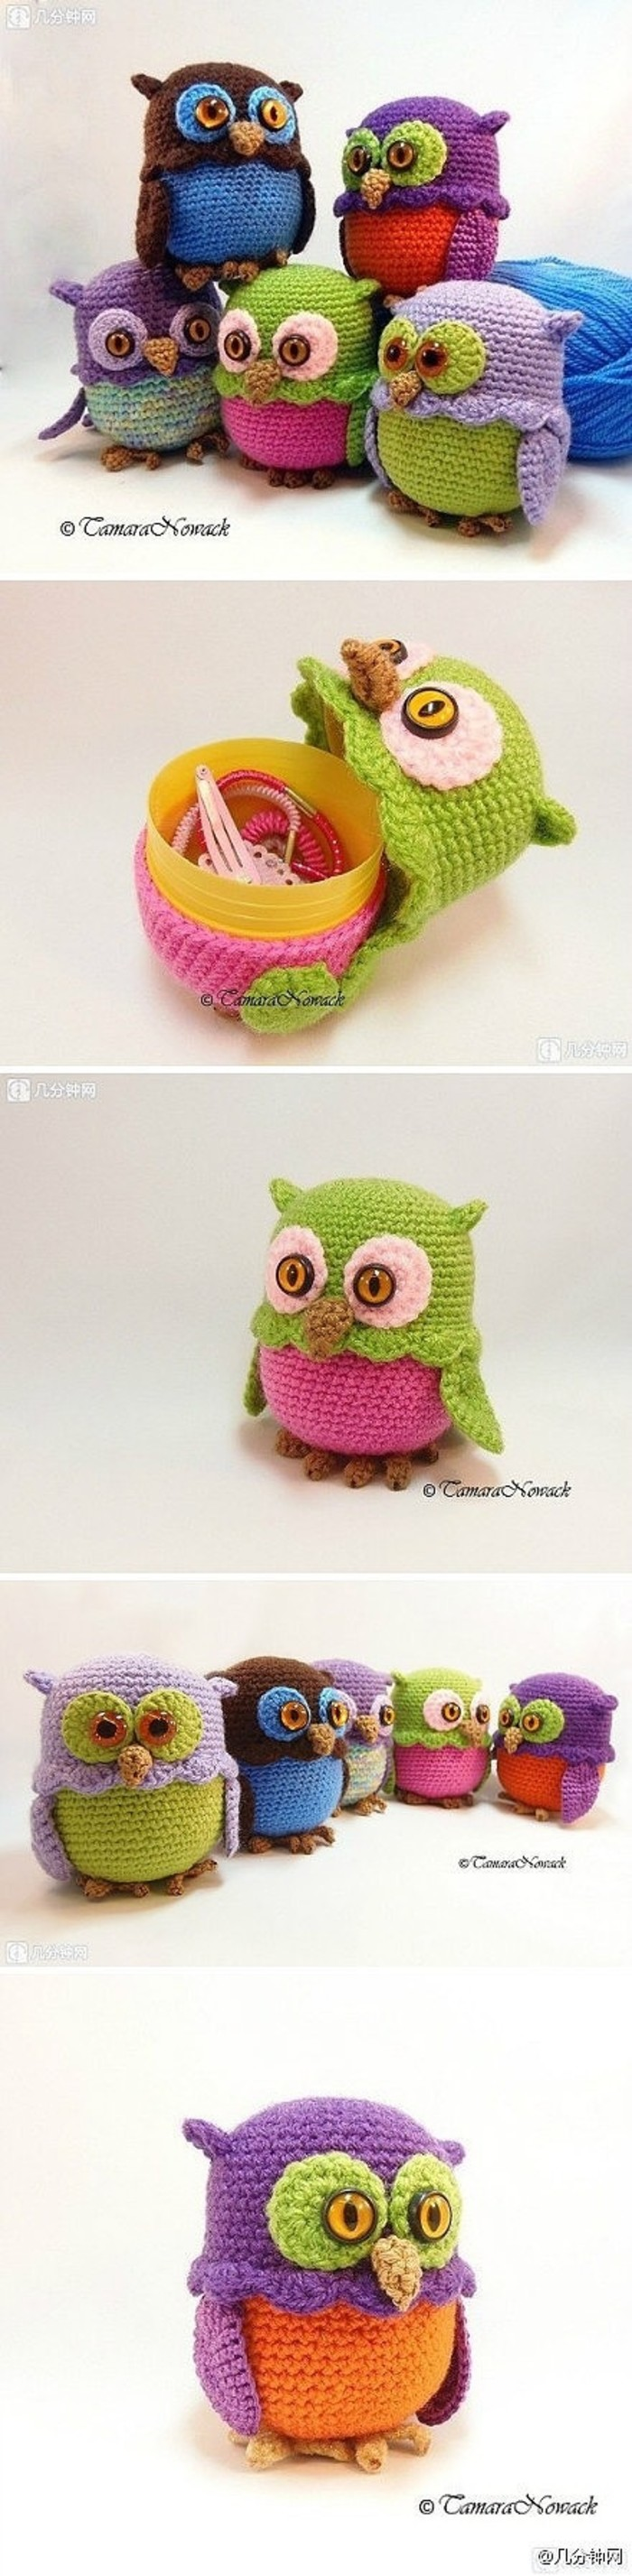 Heap tutorial crochet owl handmade diy storage box crochet heap tutorial crochet owl handmade diy storage box could apply the same into the laundry basket storage bankloansurffo Images